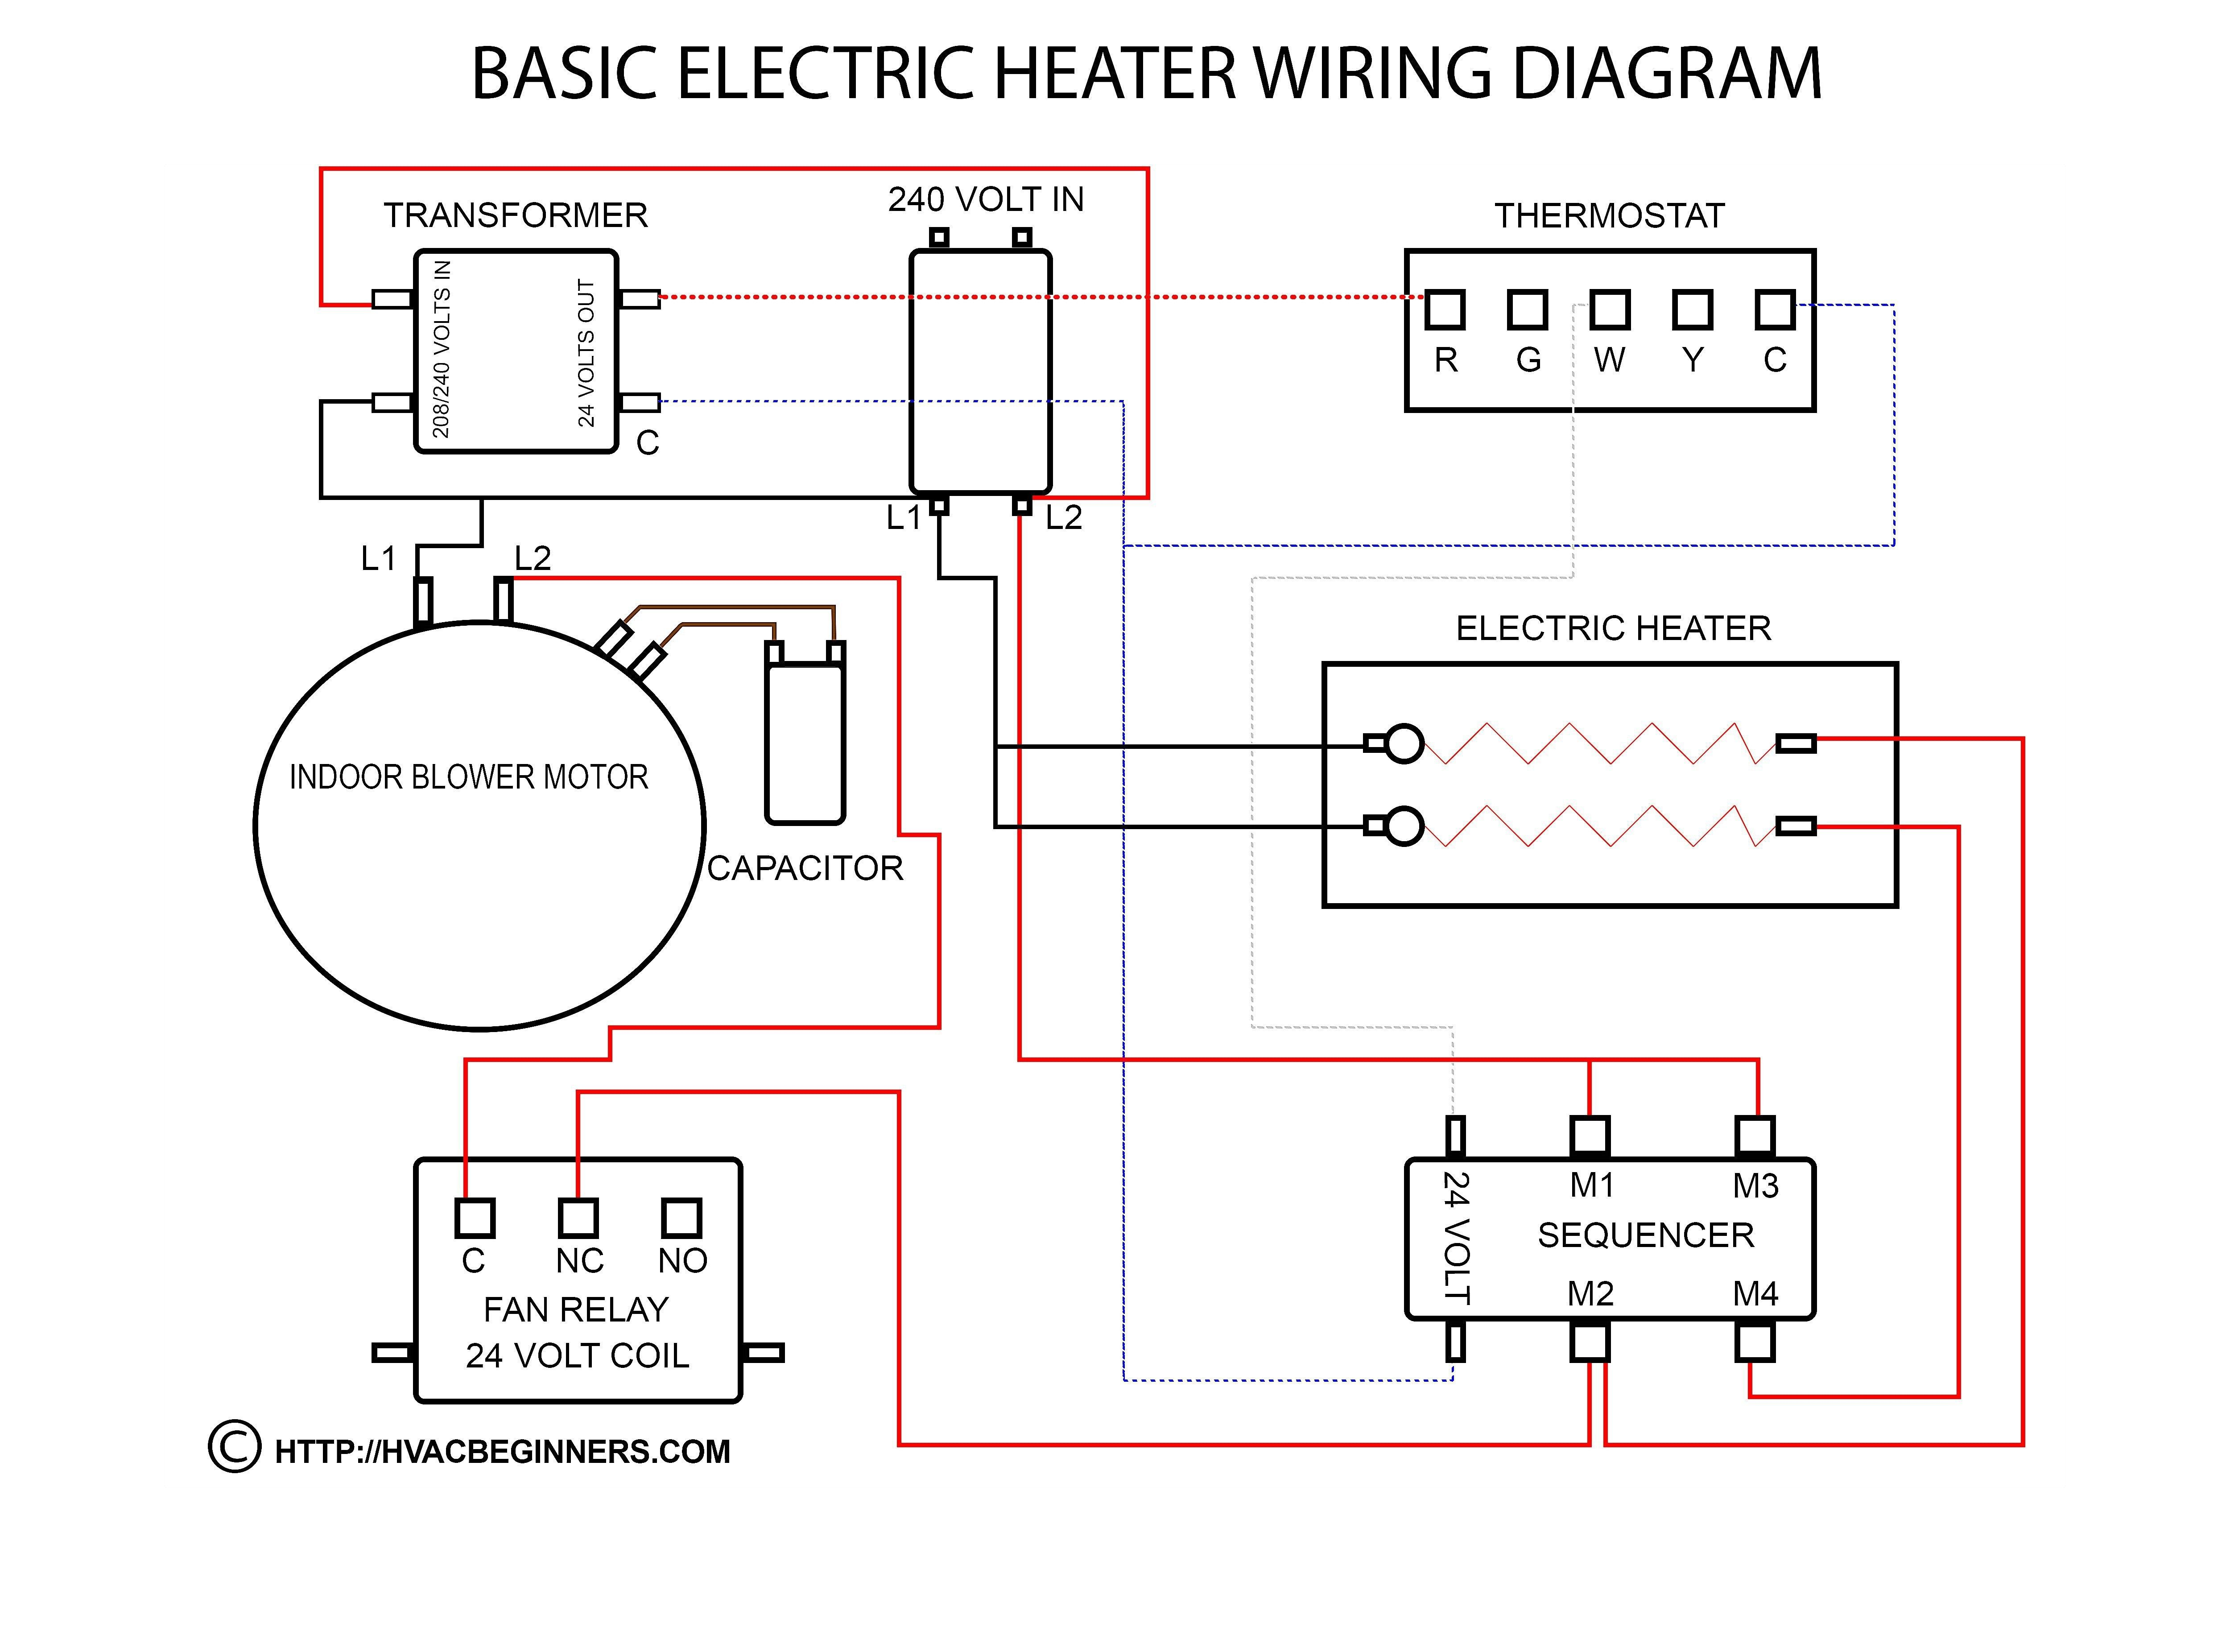 hight resolution of unique home wiring diagram sample diagram diagramsample diagramtemplate wiringdiagram diagramchart worksheet worksheettemplate